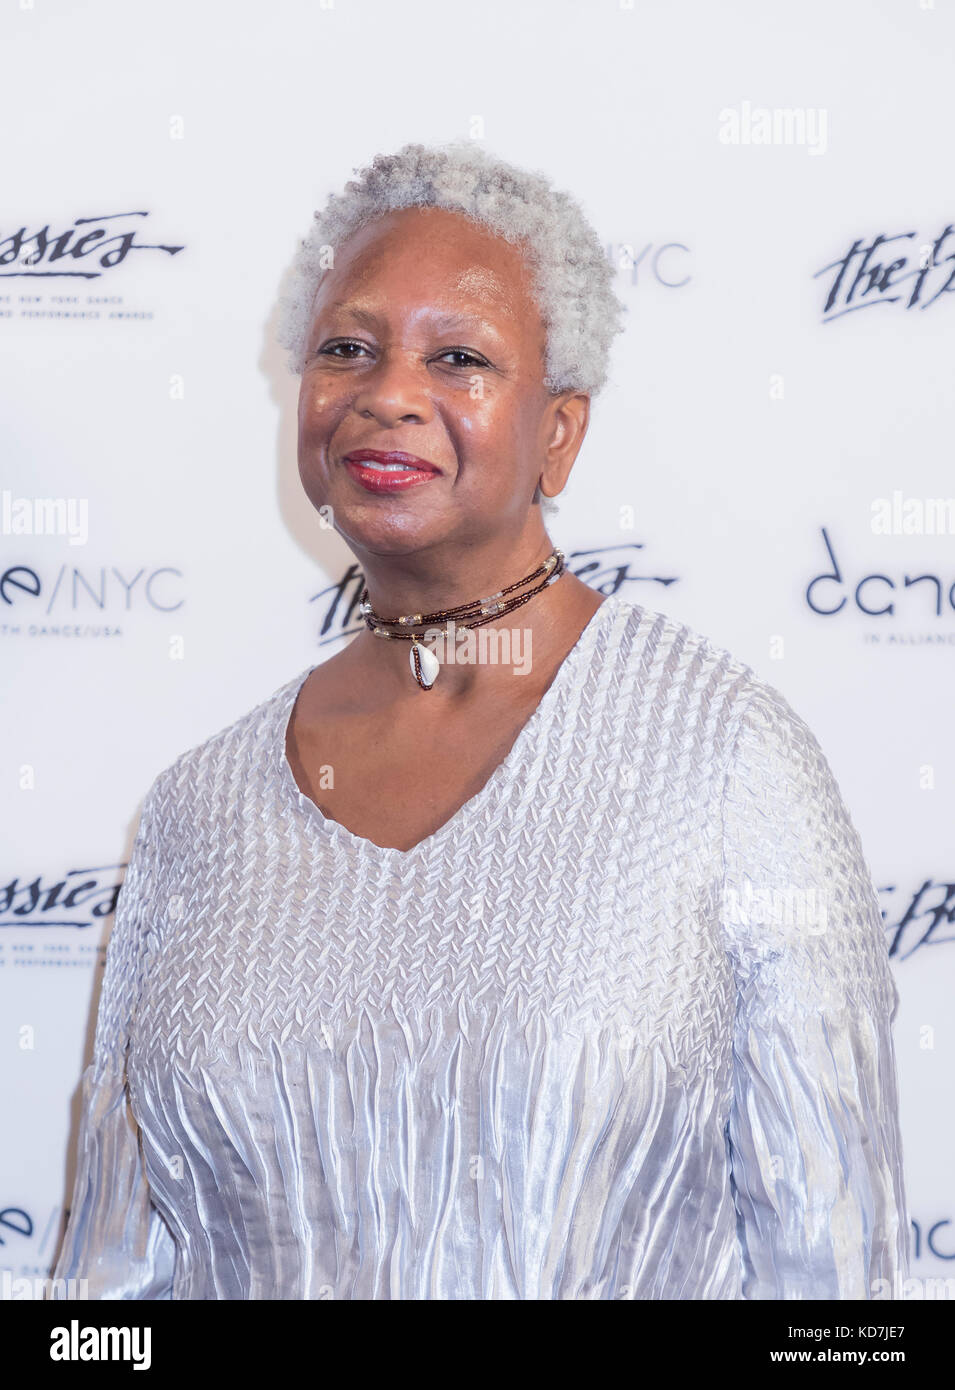 New York, USA. 09th Oct, 2017. 2017 Bessie Award nominee Eva Yaa Asantewaa attends The 33rd Annual NY Dance and - Stock Image